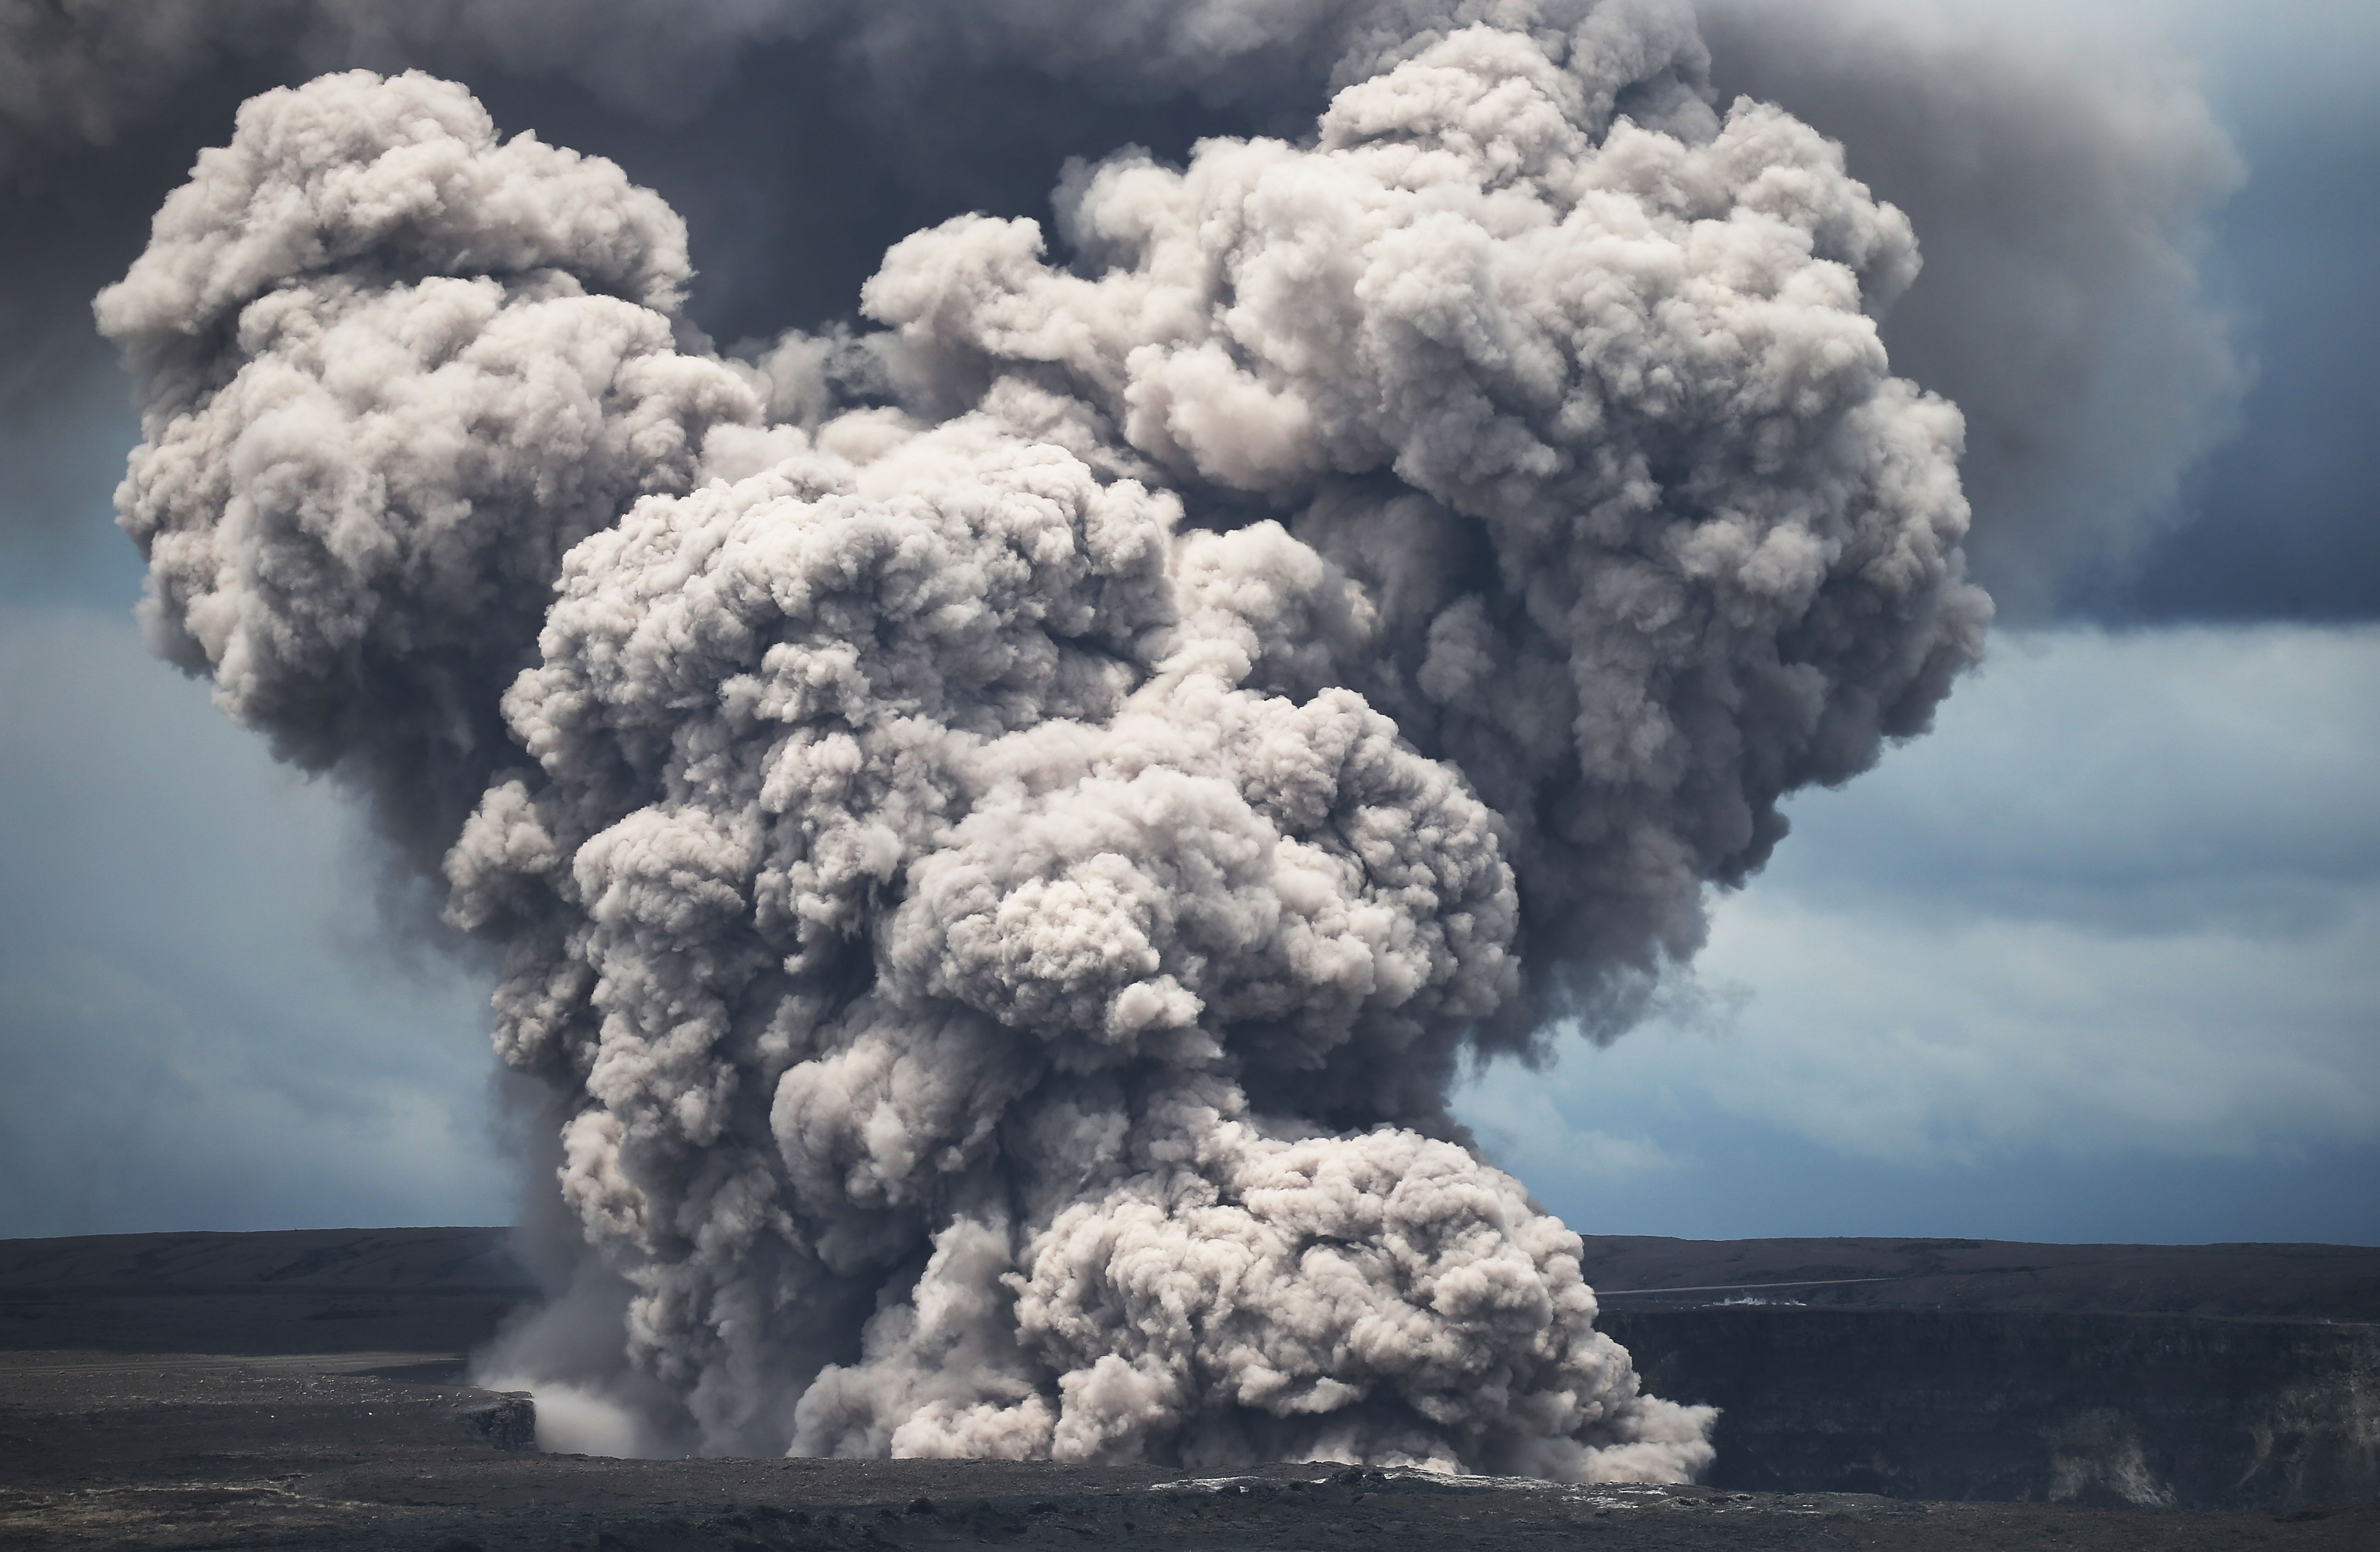 Hawaii Kilauea volcano erupts explosively and shoots ash